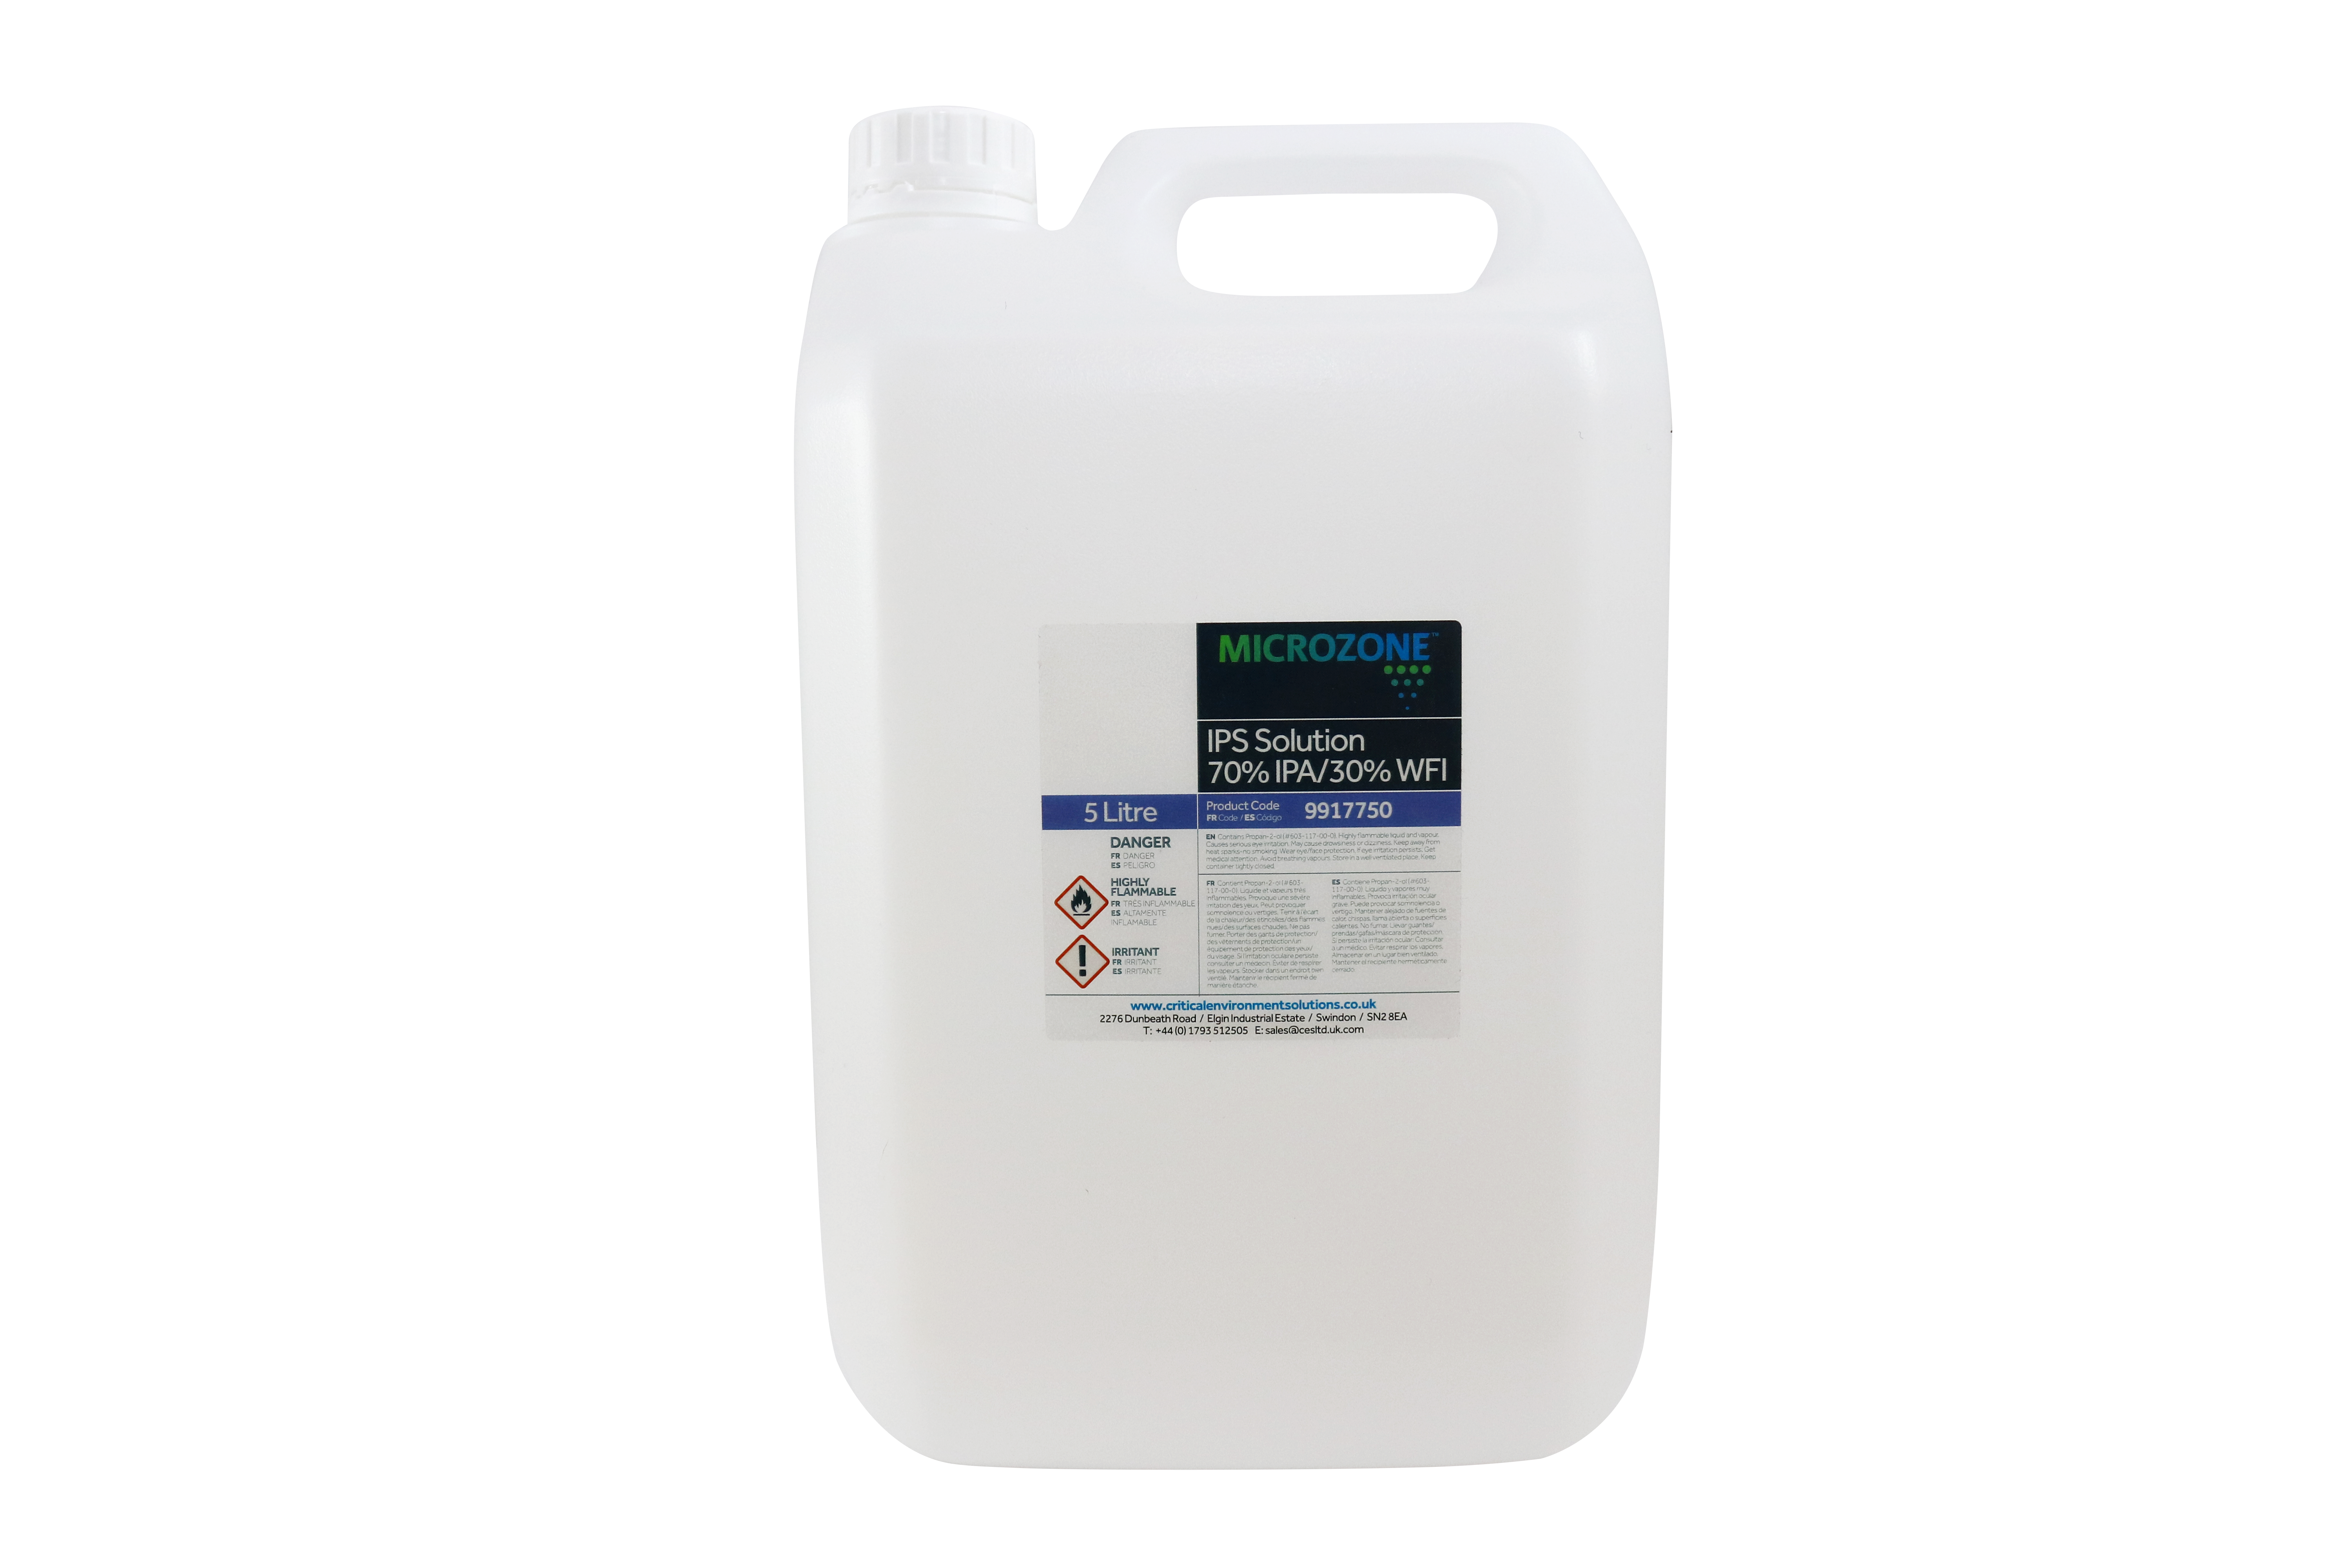 Admirable Microzone Cleanroom 70 Ips Disinfectant Solution 5Ltr Home Interior And Landscaping Ferensignezvosmurscom